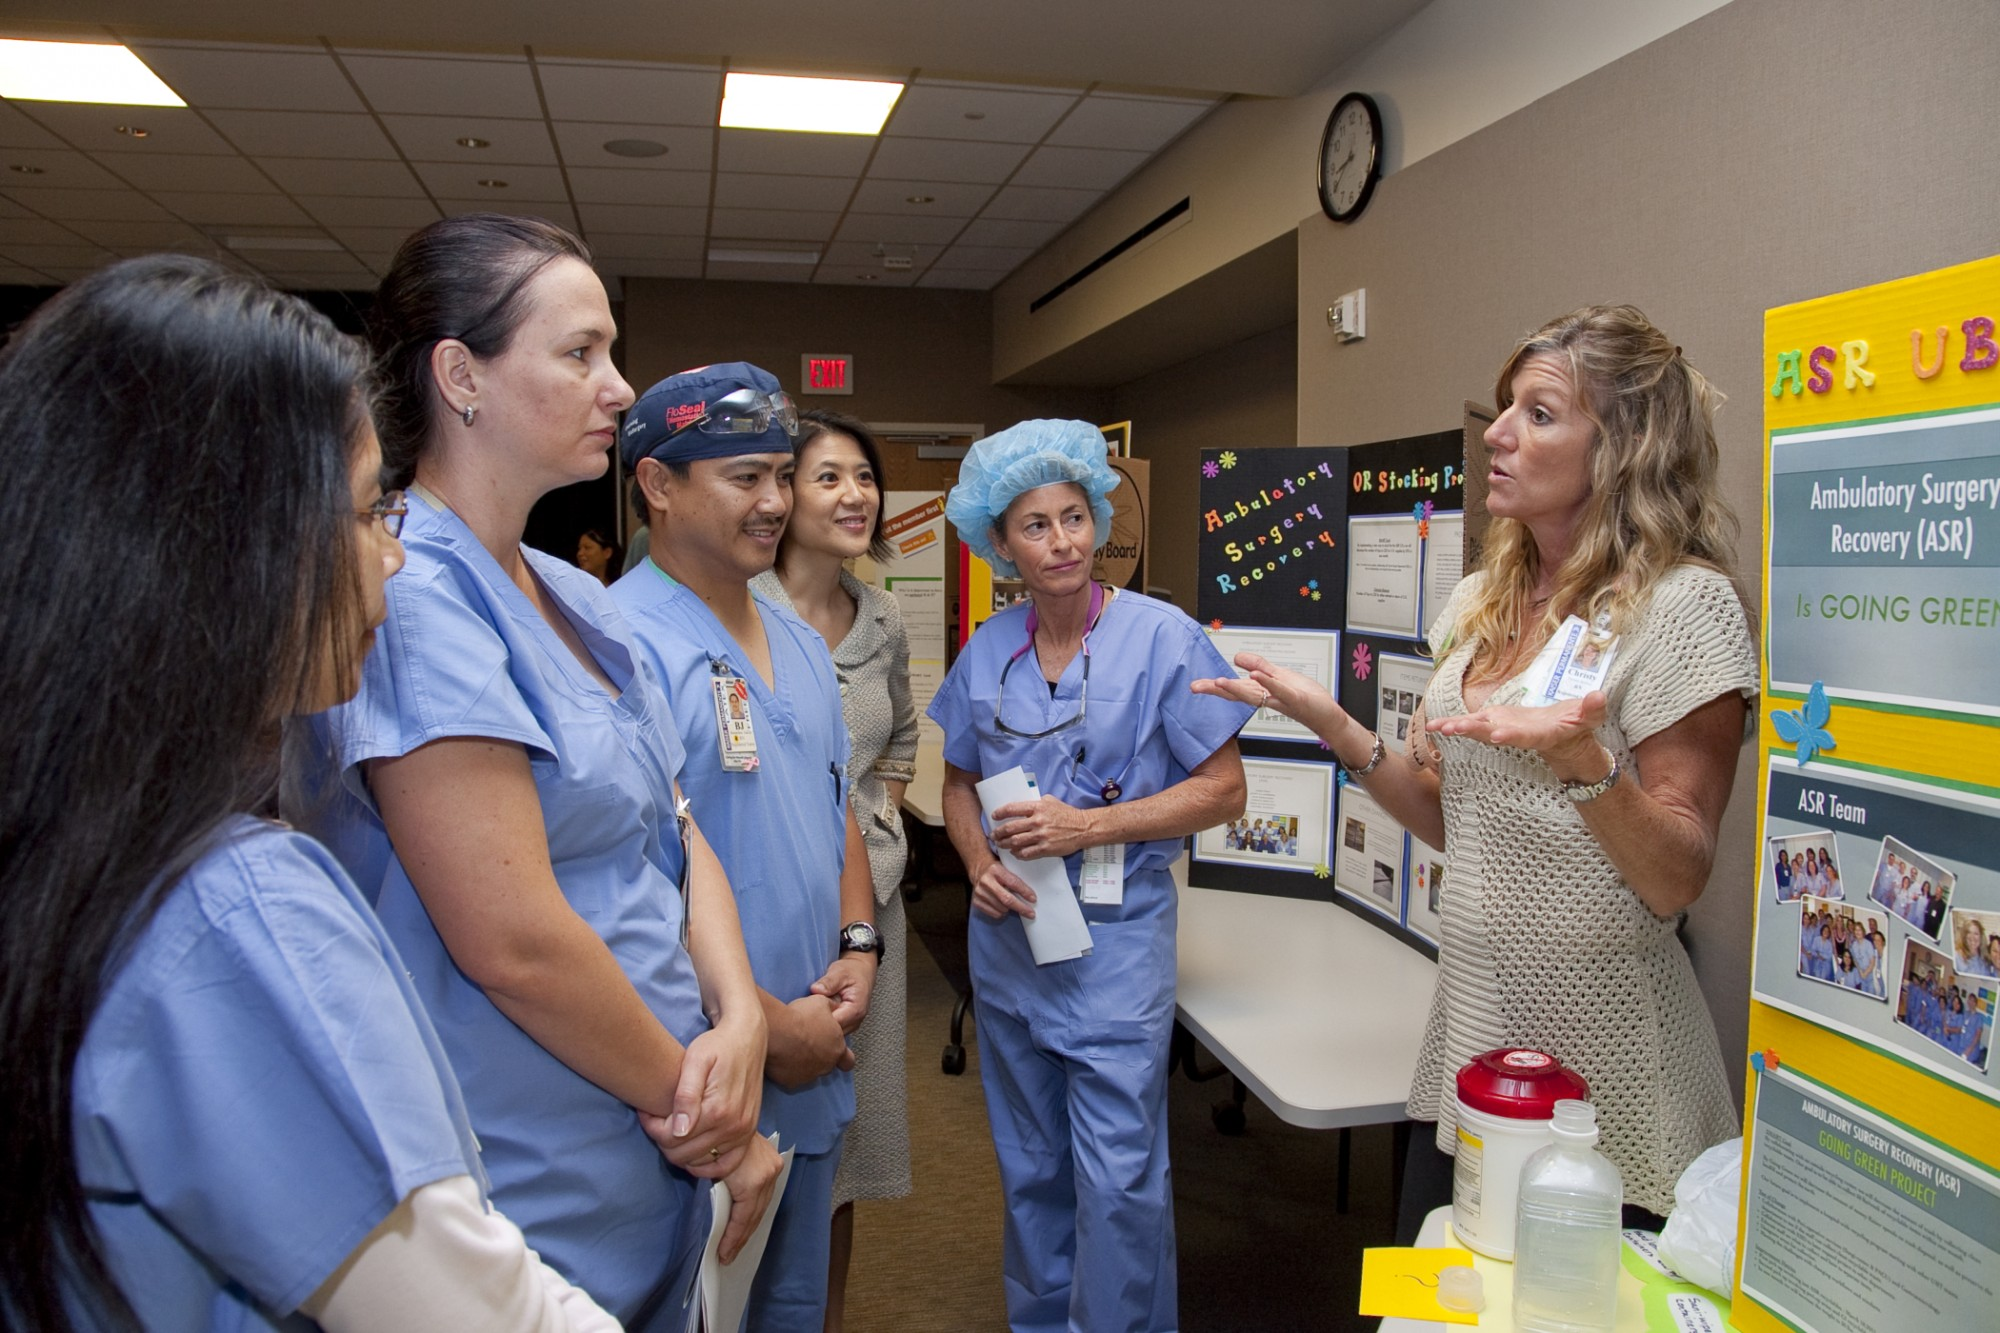 A woman explains a storyboard to several nurses gathered around her